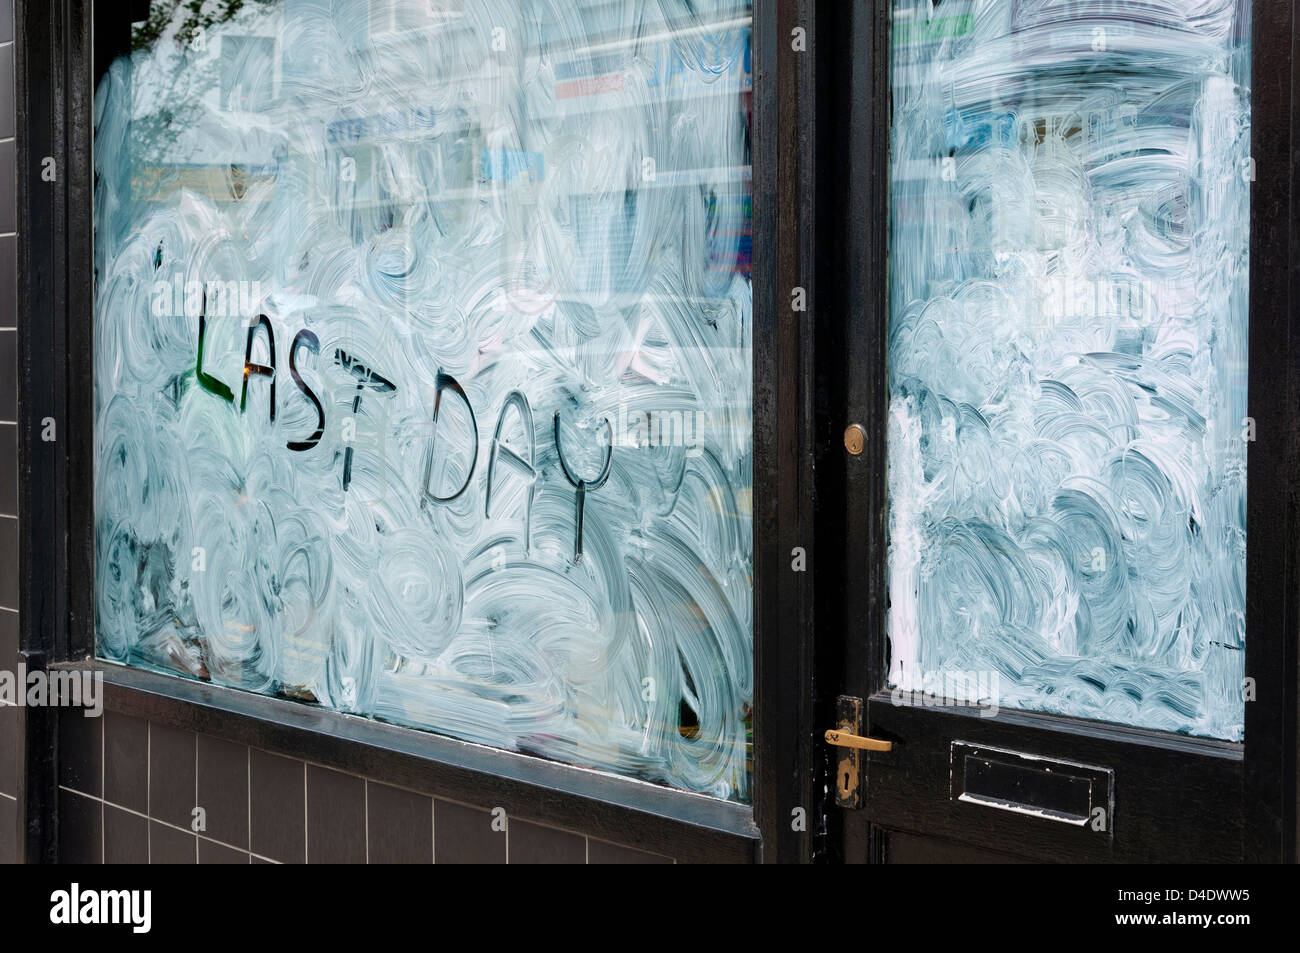 Closed down shop with Last Day written on the shop window, UK - Stock Image